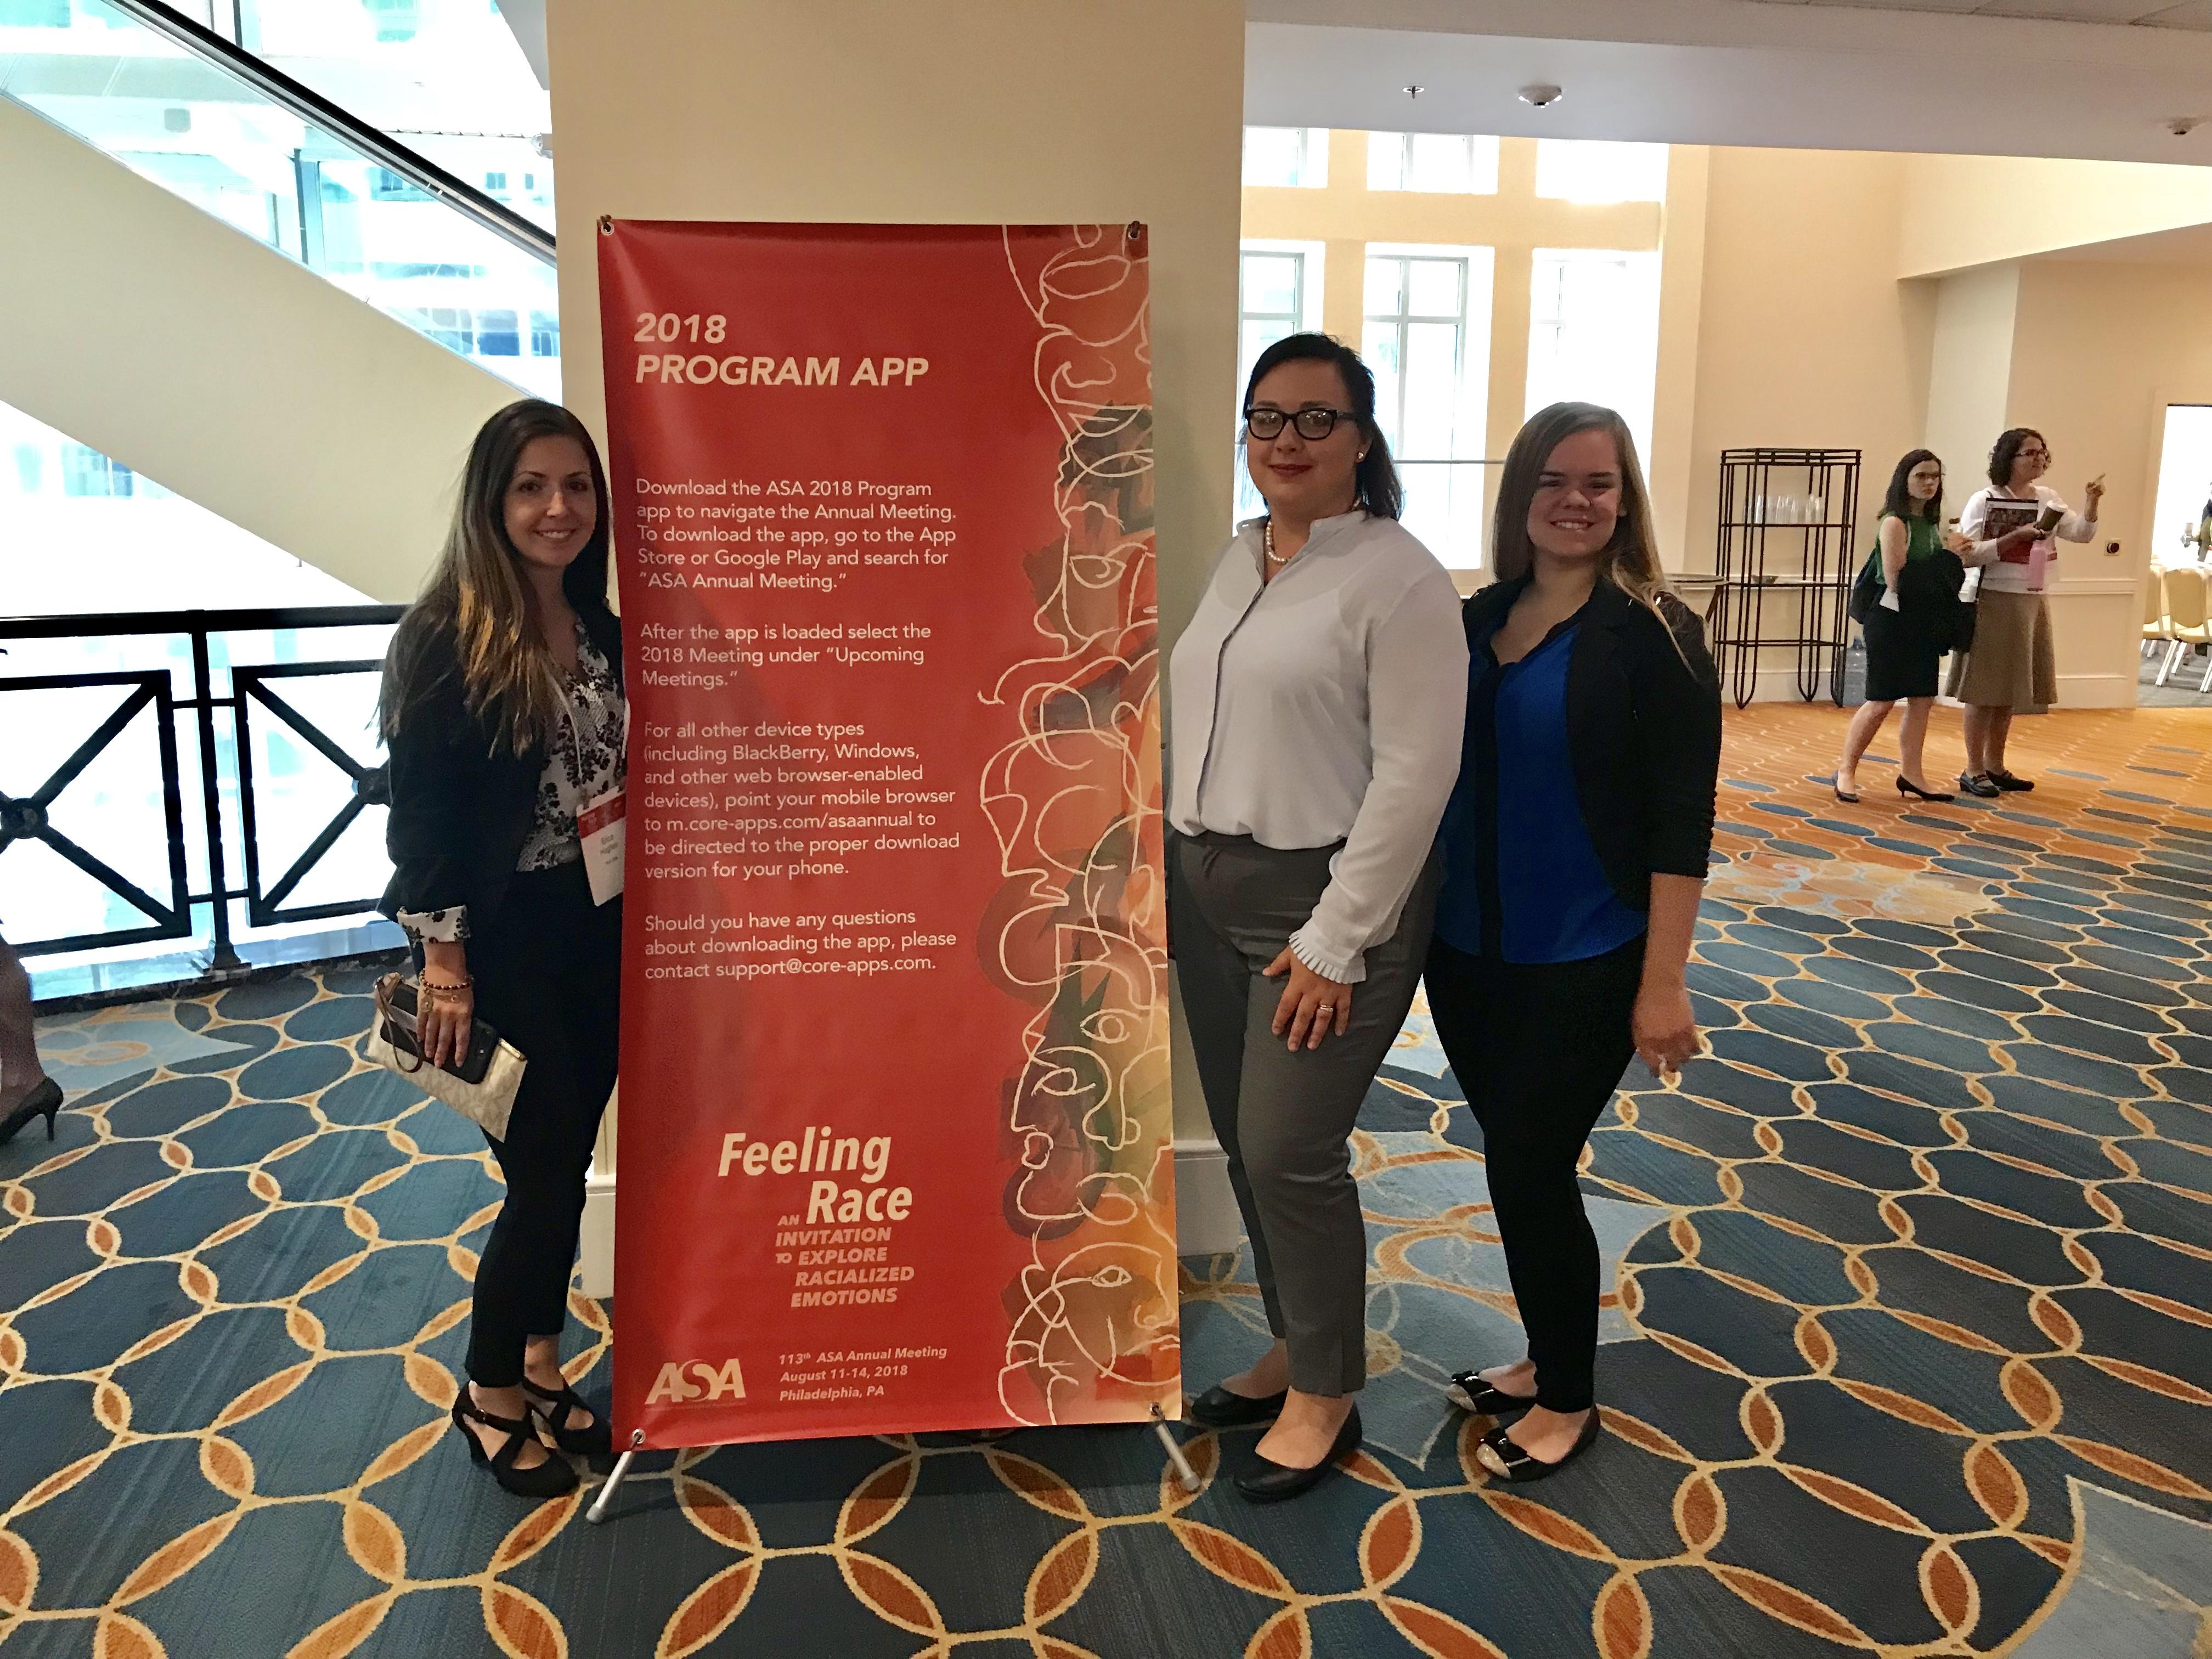 Penn State Lehigh Valley students Erica Hughes, Kirsten Mears and Amanda Borges (left to right) presented research on how many college students know someone with opioid addiction at a conference in Philadelphia.